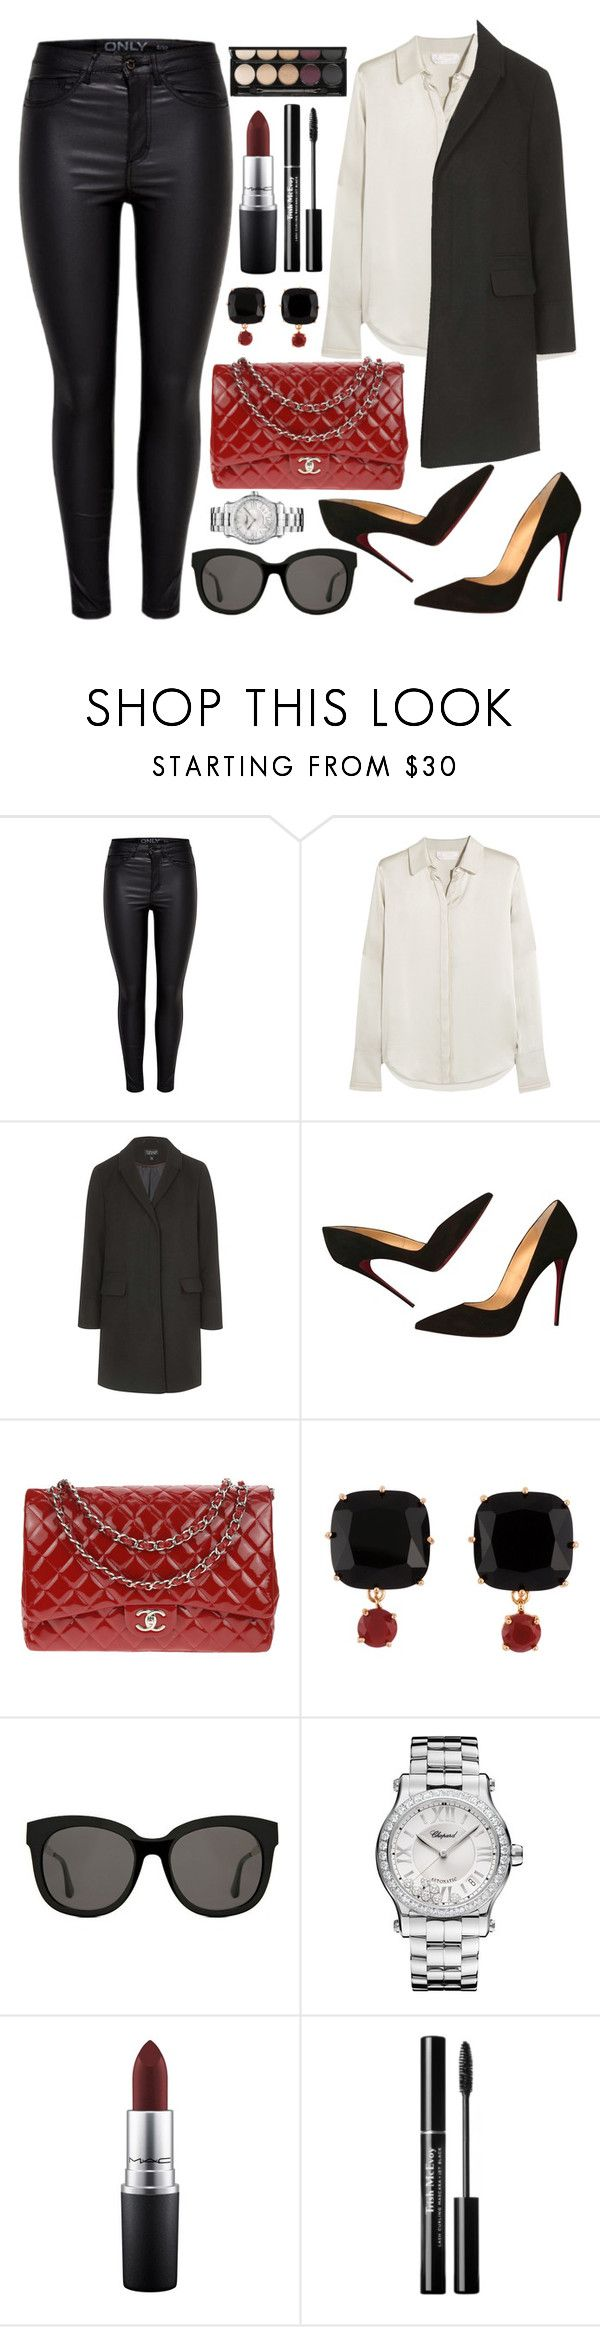 """""""Untitled #4438"""" by natalyasidunova ❤ liked on Polyvore featuring Chloé, Topshop, Christian Louboutin, Chanel, Les Néréides, Gentle Monster, Chopard, MAC Cosmetics and Witchery"""